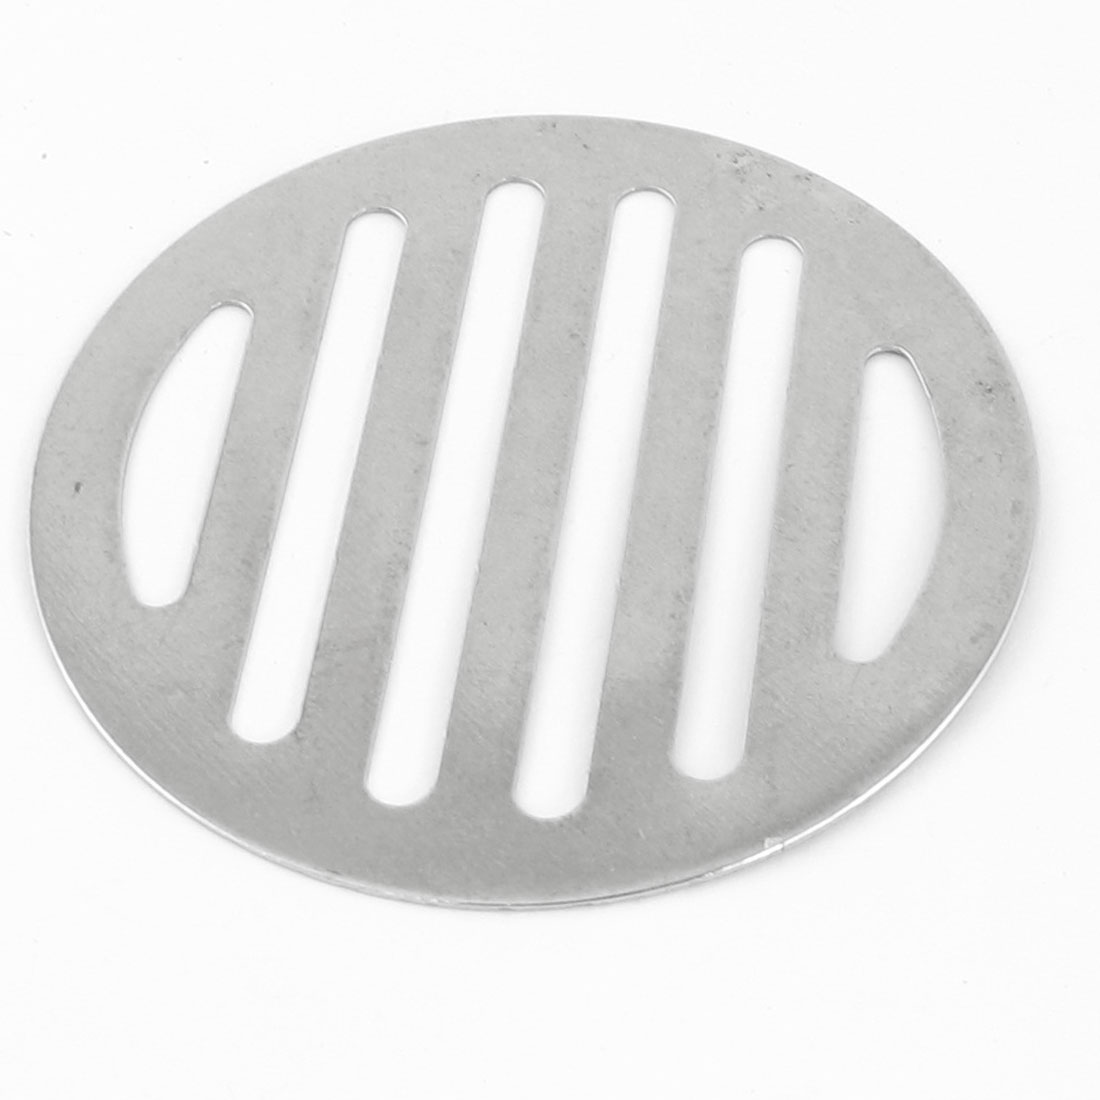 "Kitchen 8.5cm 3.3"" Diameter Round Stainless Steel Floor Drain Cover"